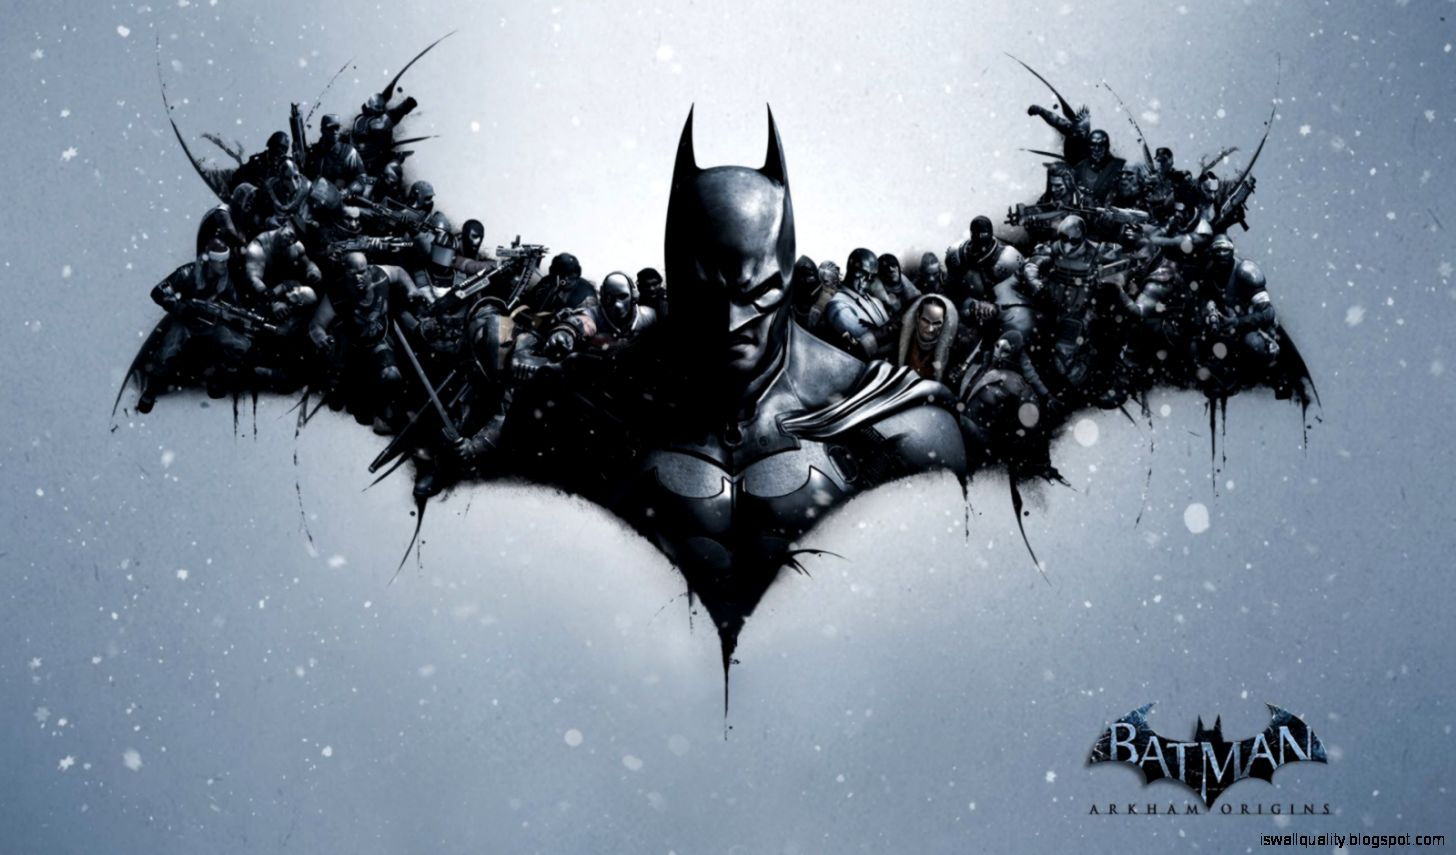 batman arkham origins video game wallpapers - 74 Batman Arkham Origins HD Wallpapers Backgrounds